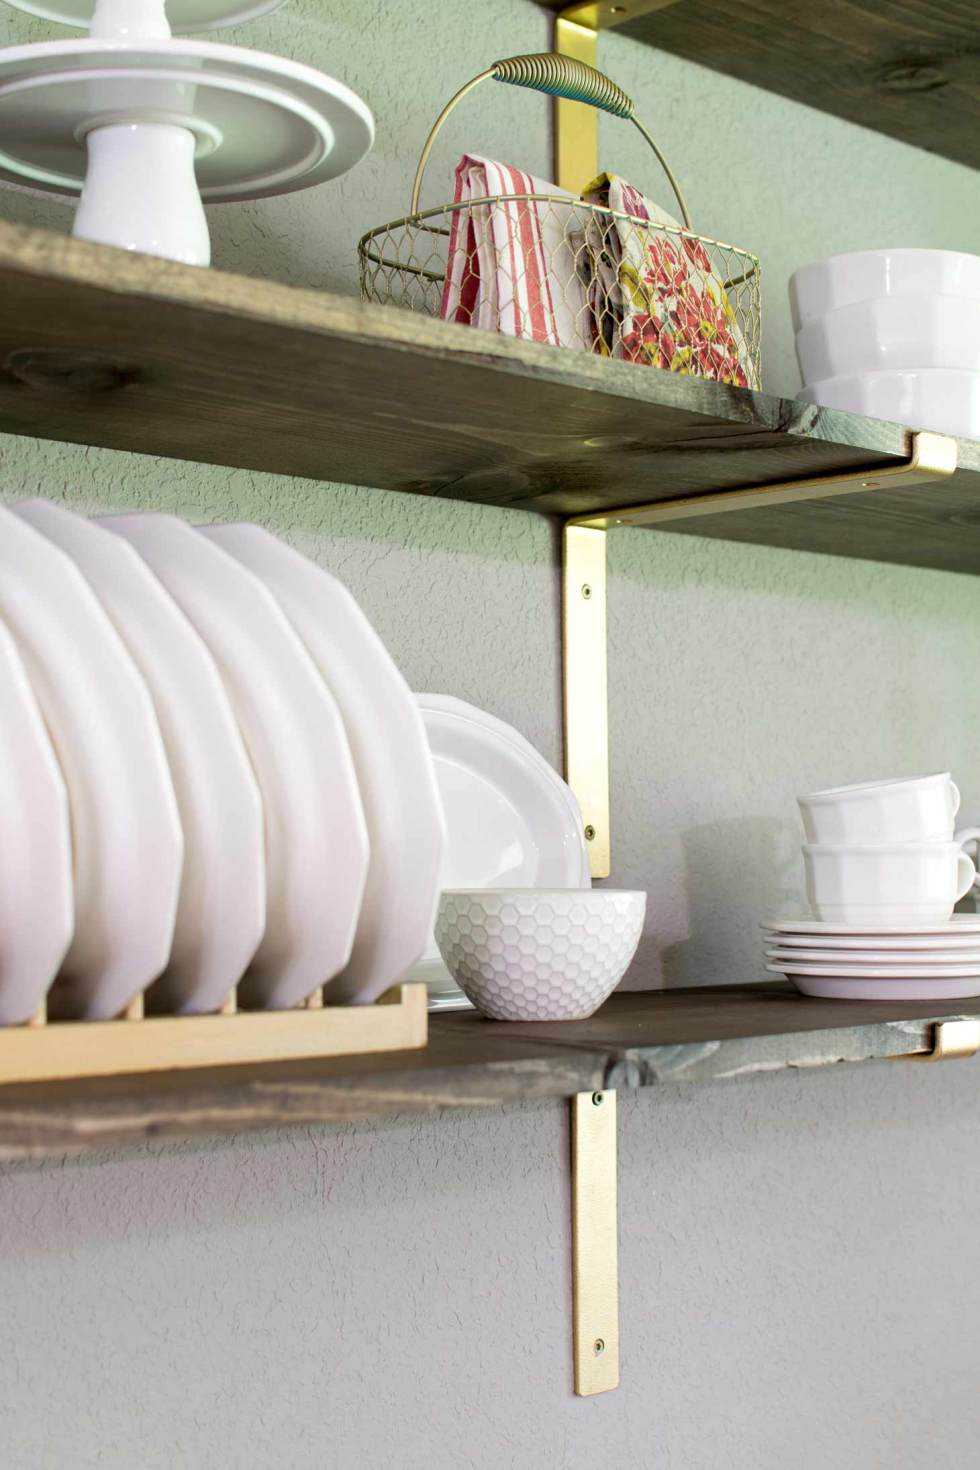 white dishes on rustic shelves in a breakfast room